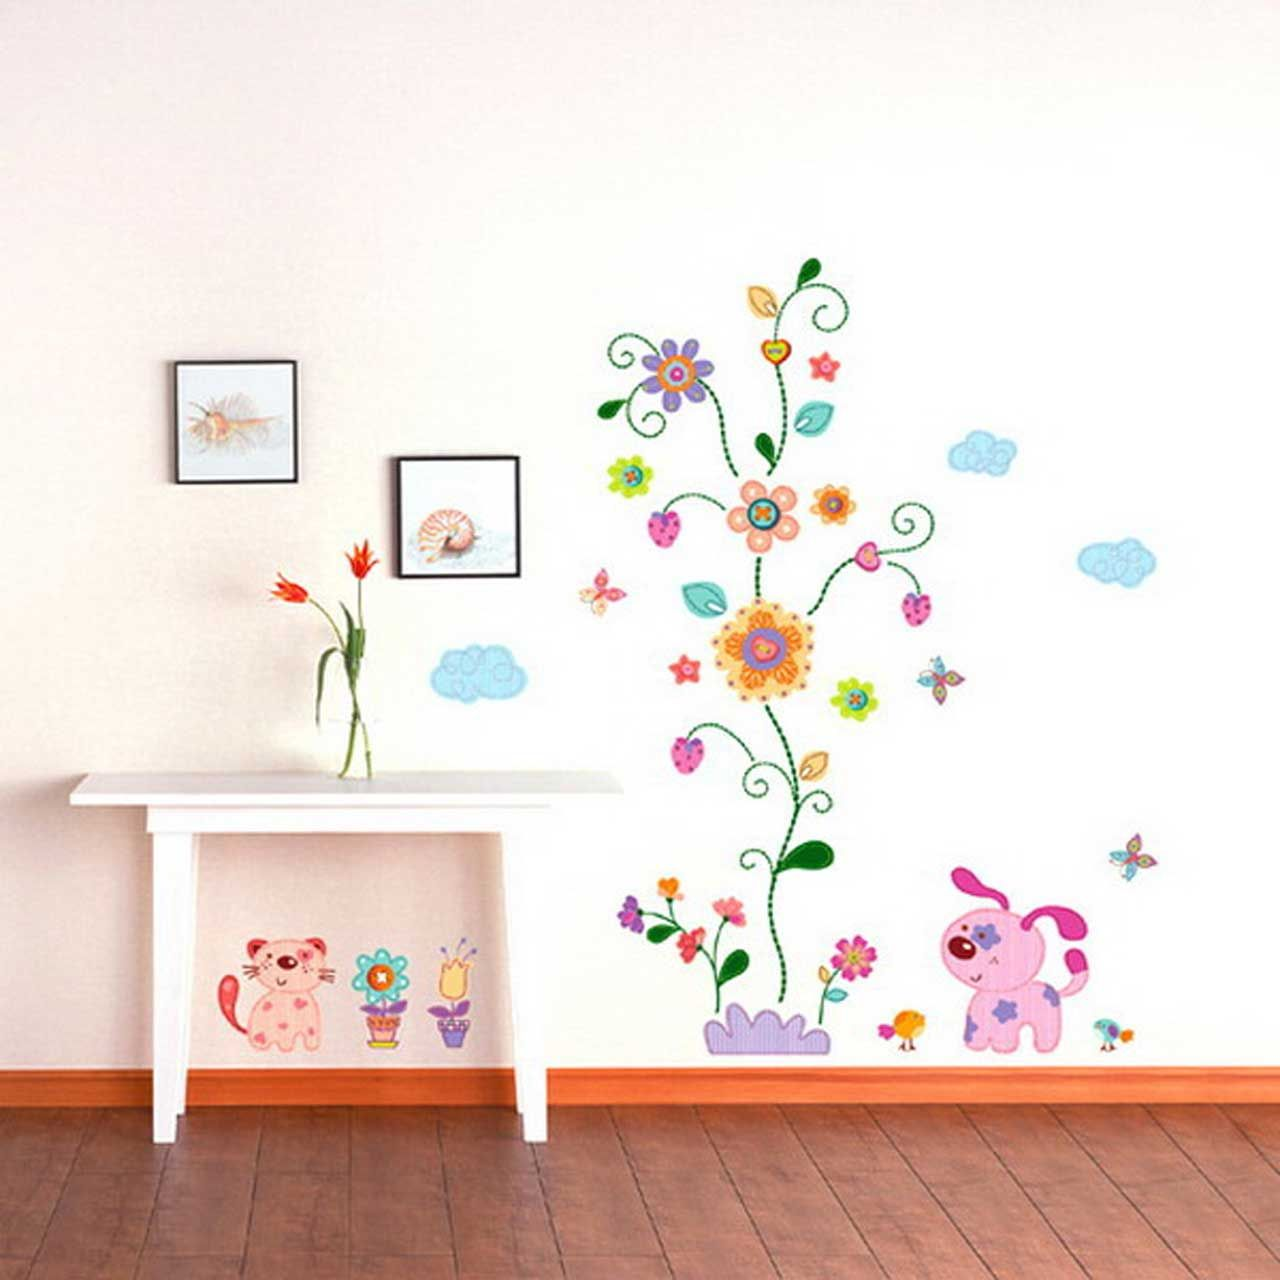 Beautiful kids room decorating design ideas with creative Kids room wall painting design